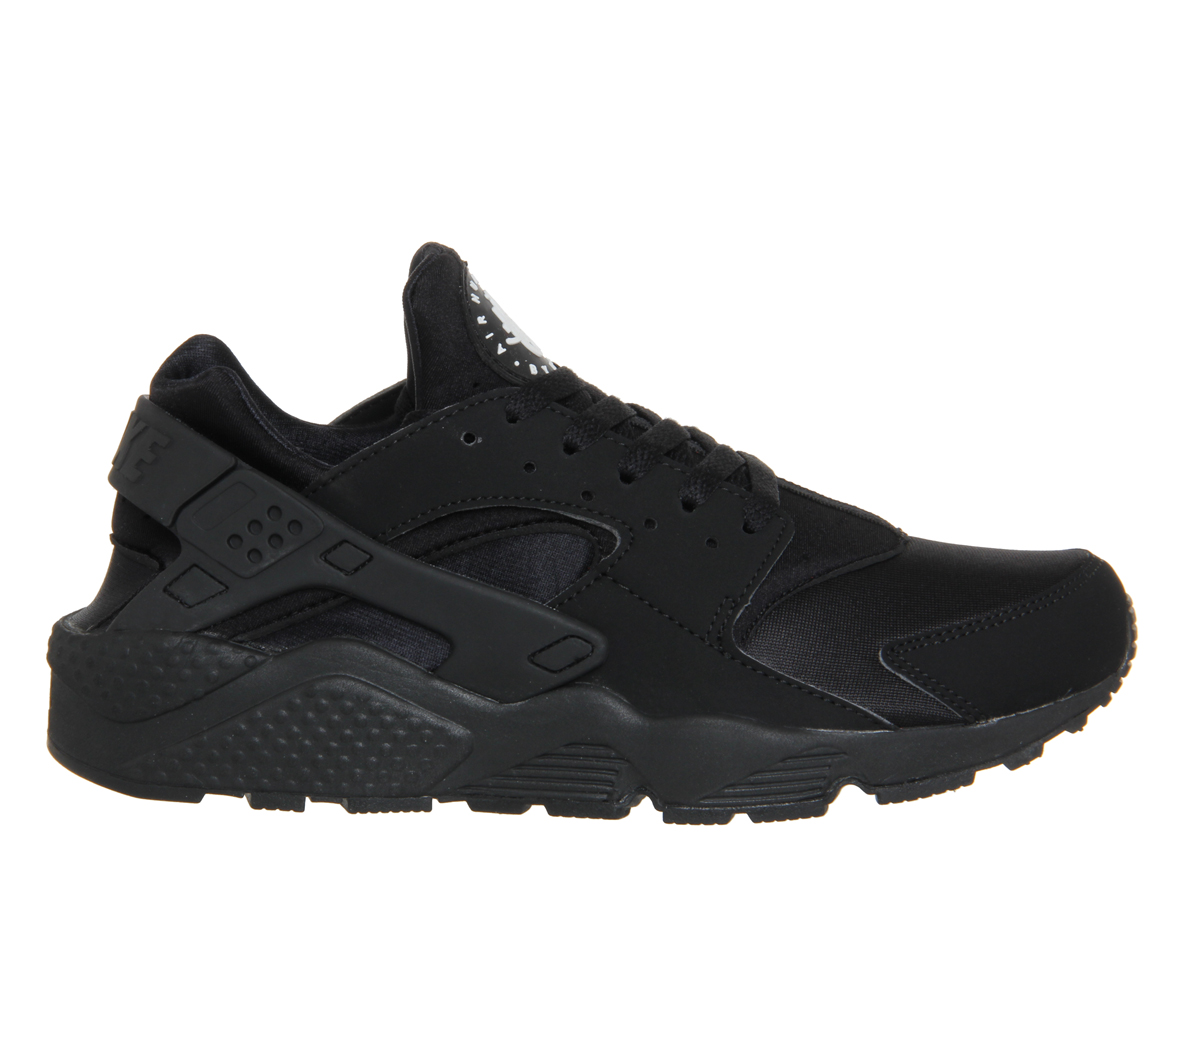 0985e7b728fe9 Nike Air Huarache Black Mono - Unisex Sports